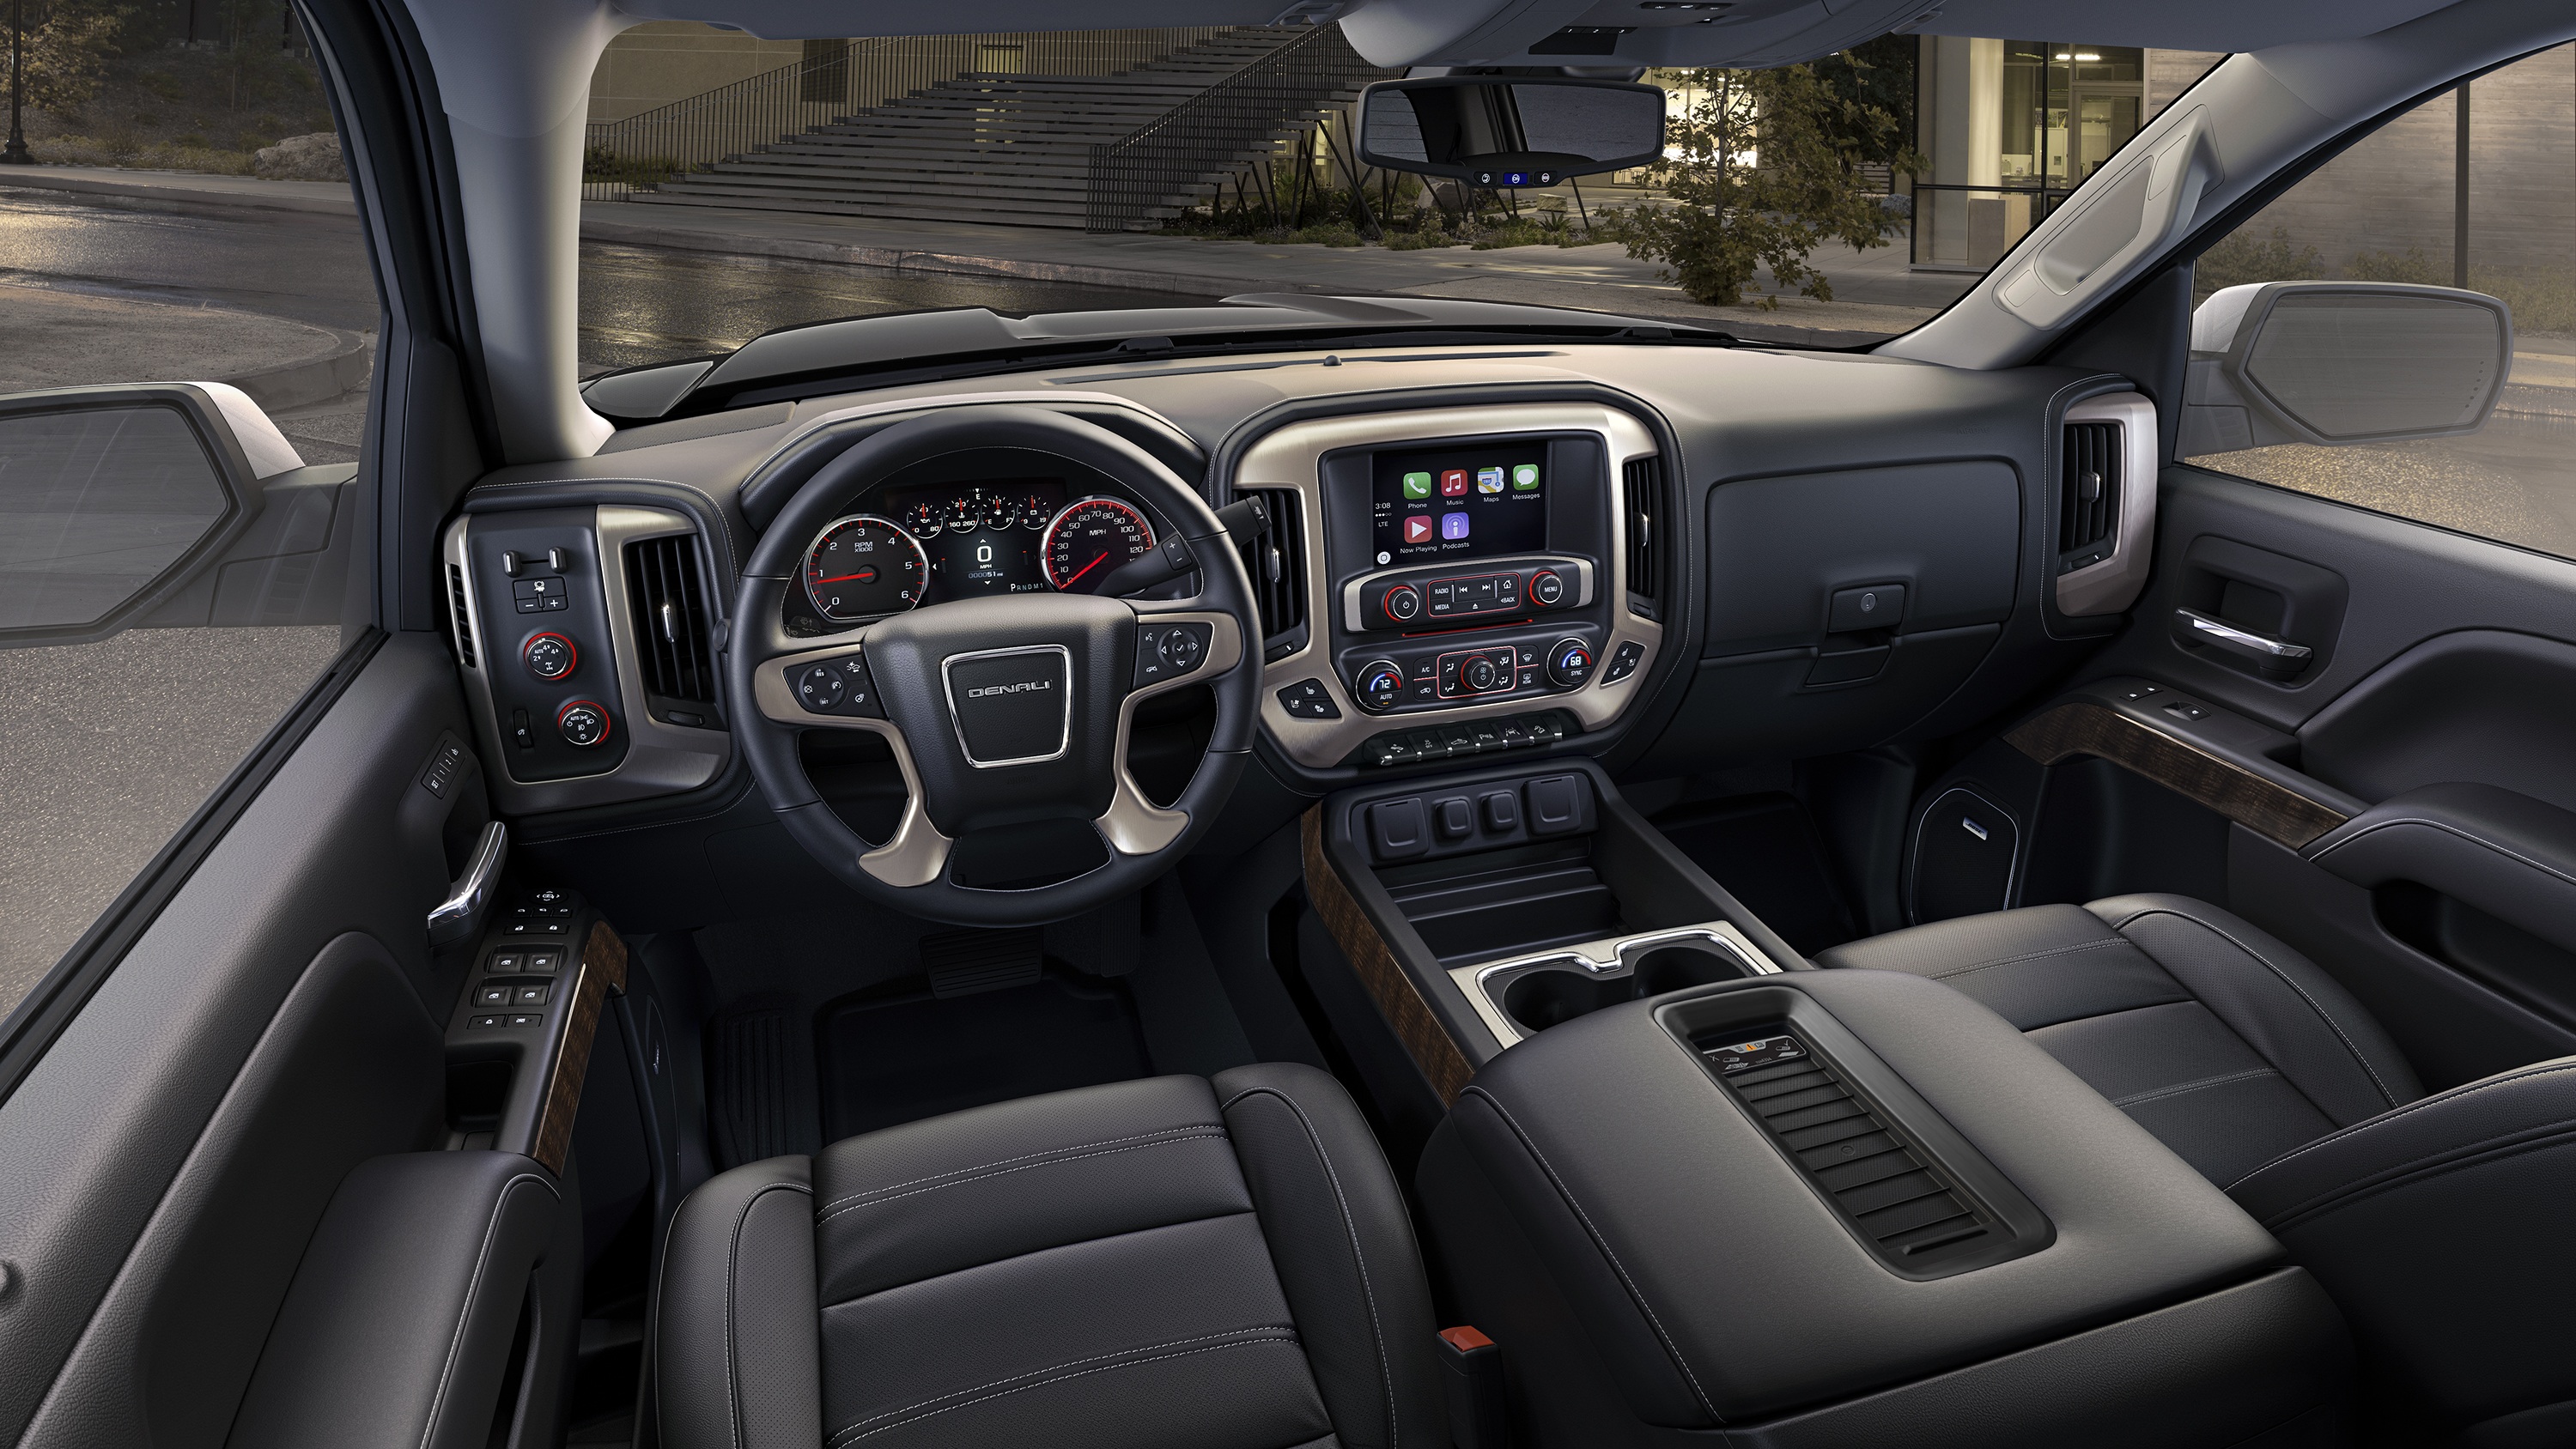 2017 GMC Sierra Hybrid Crew Cab photo - 4